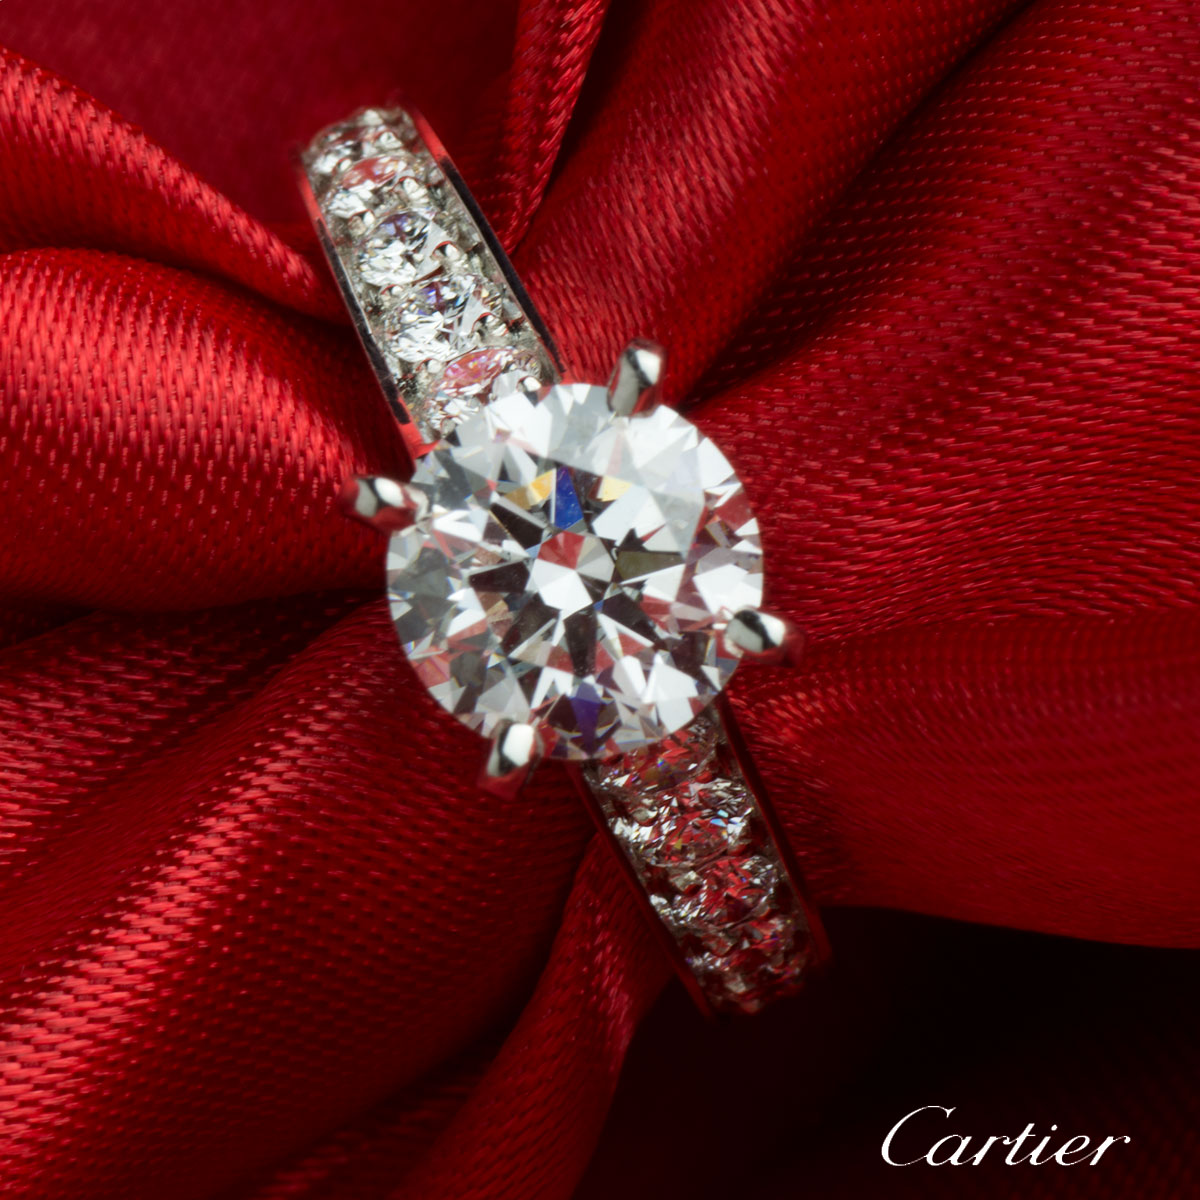 Cartier Diamond Platinum Ring 1.52ct G/VVS2 N4164654